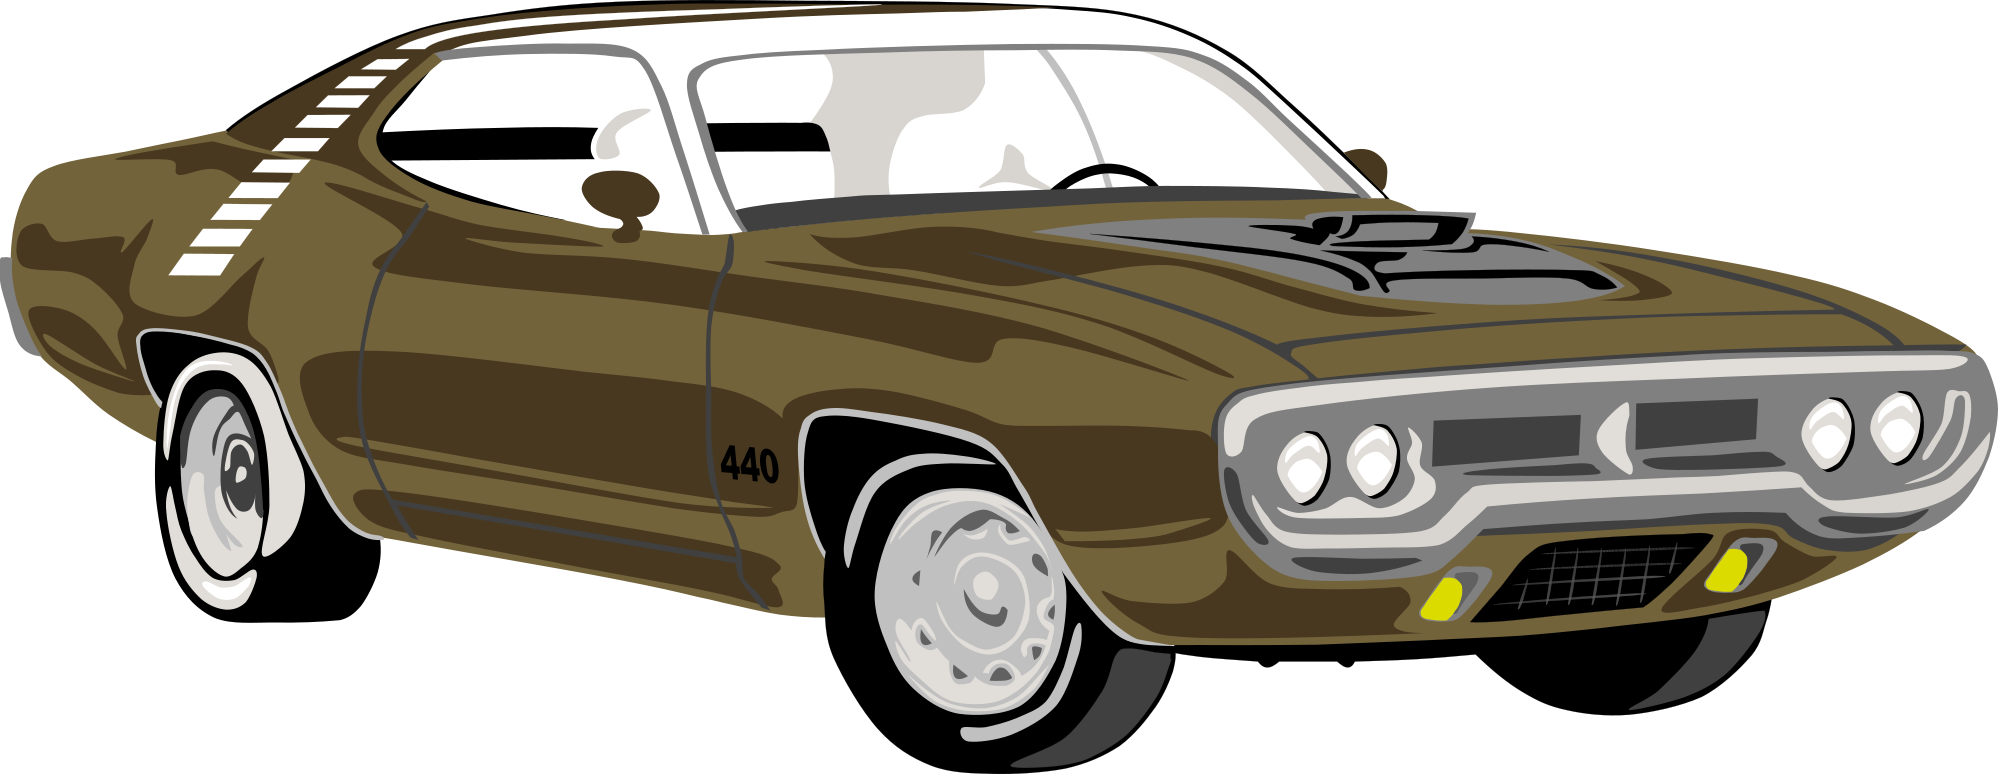 Muscle cars png file black and white. Car clipart image group